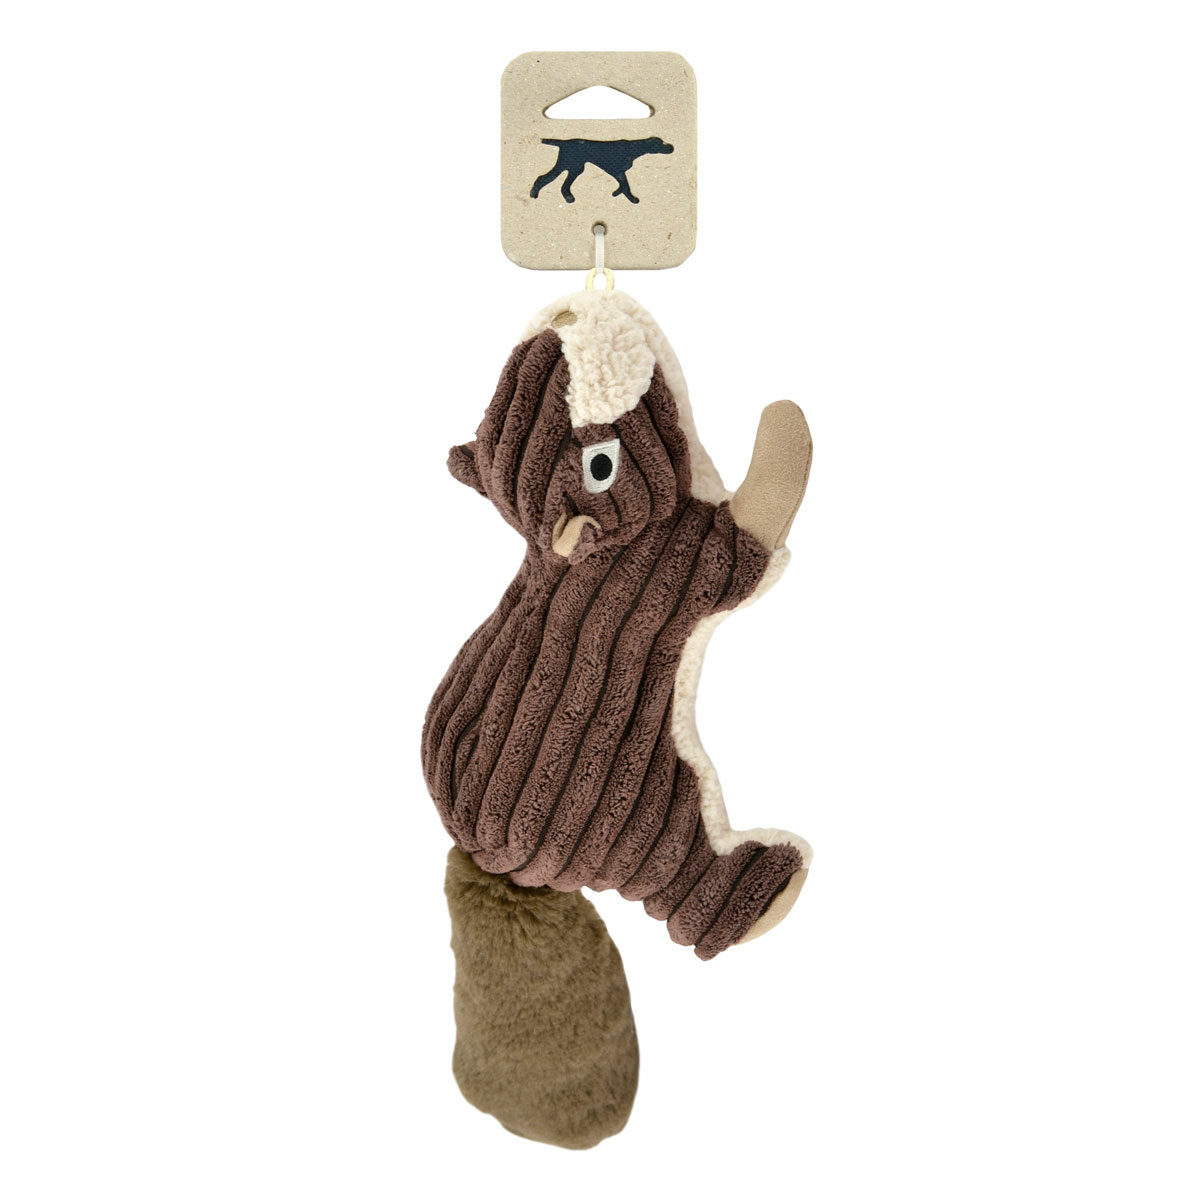 Tall Tails Plush Squirrel Dog Toy